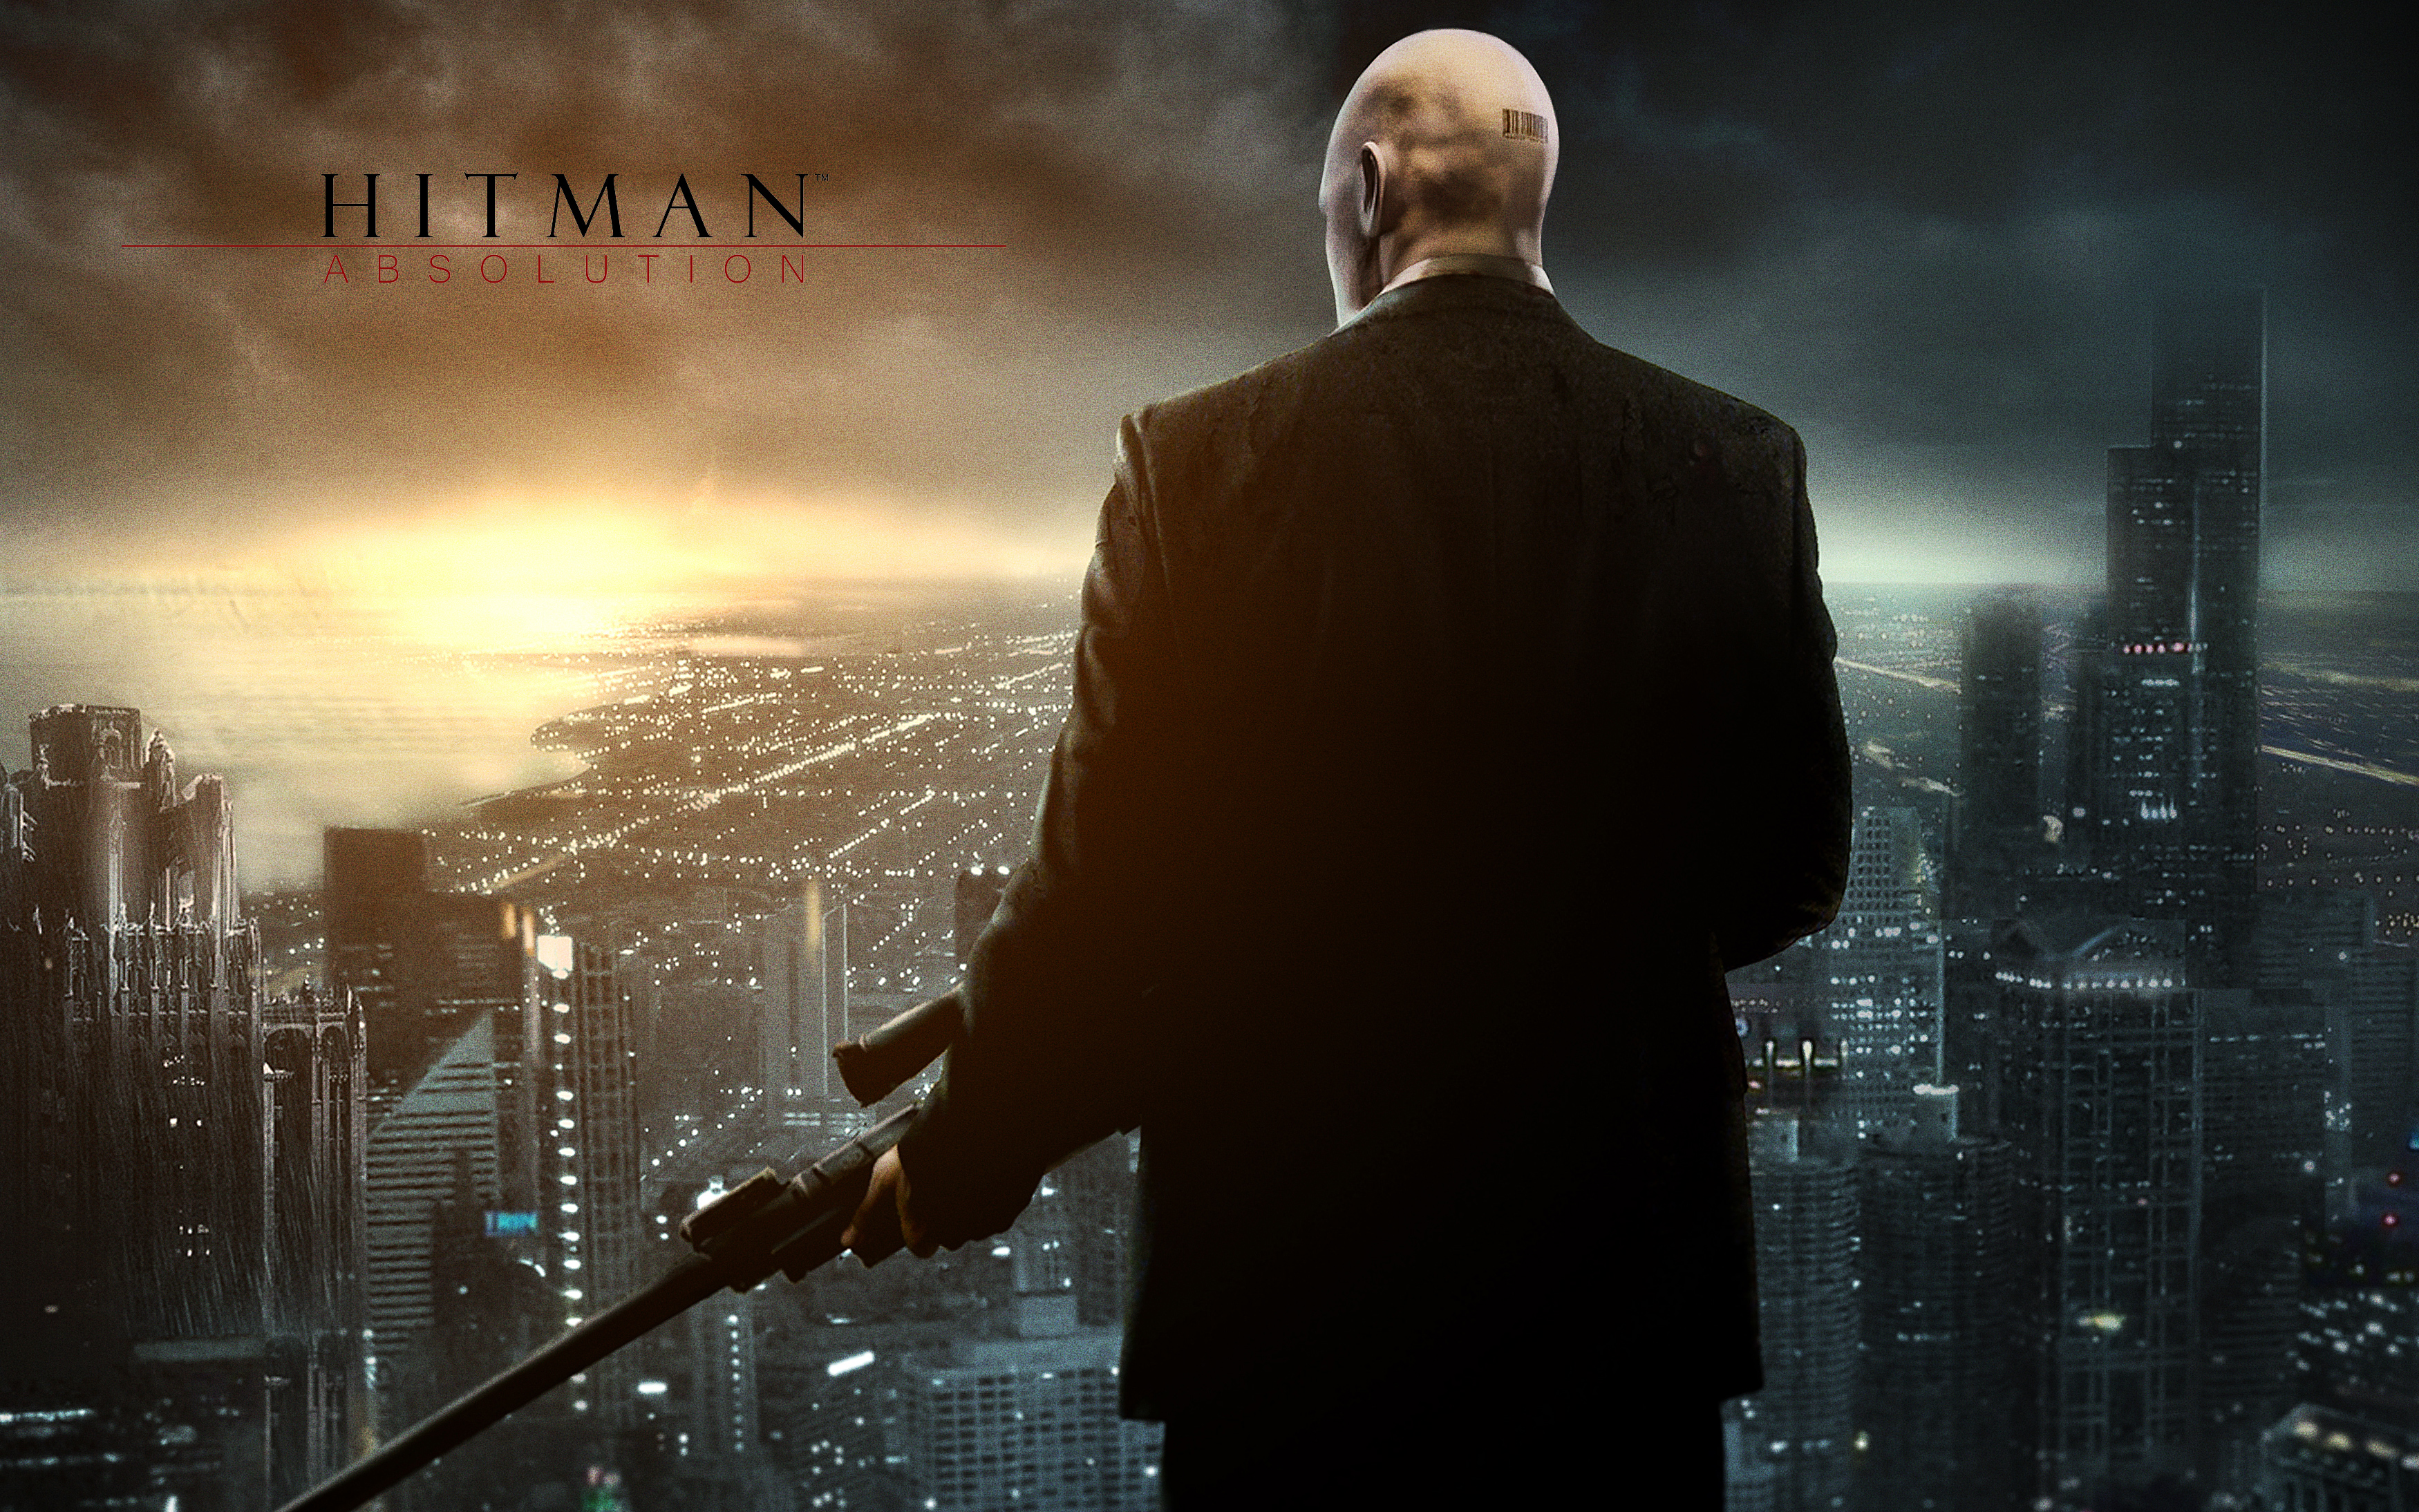 Hitman Absolution 2012